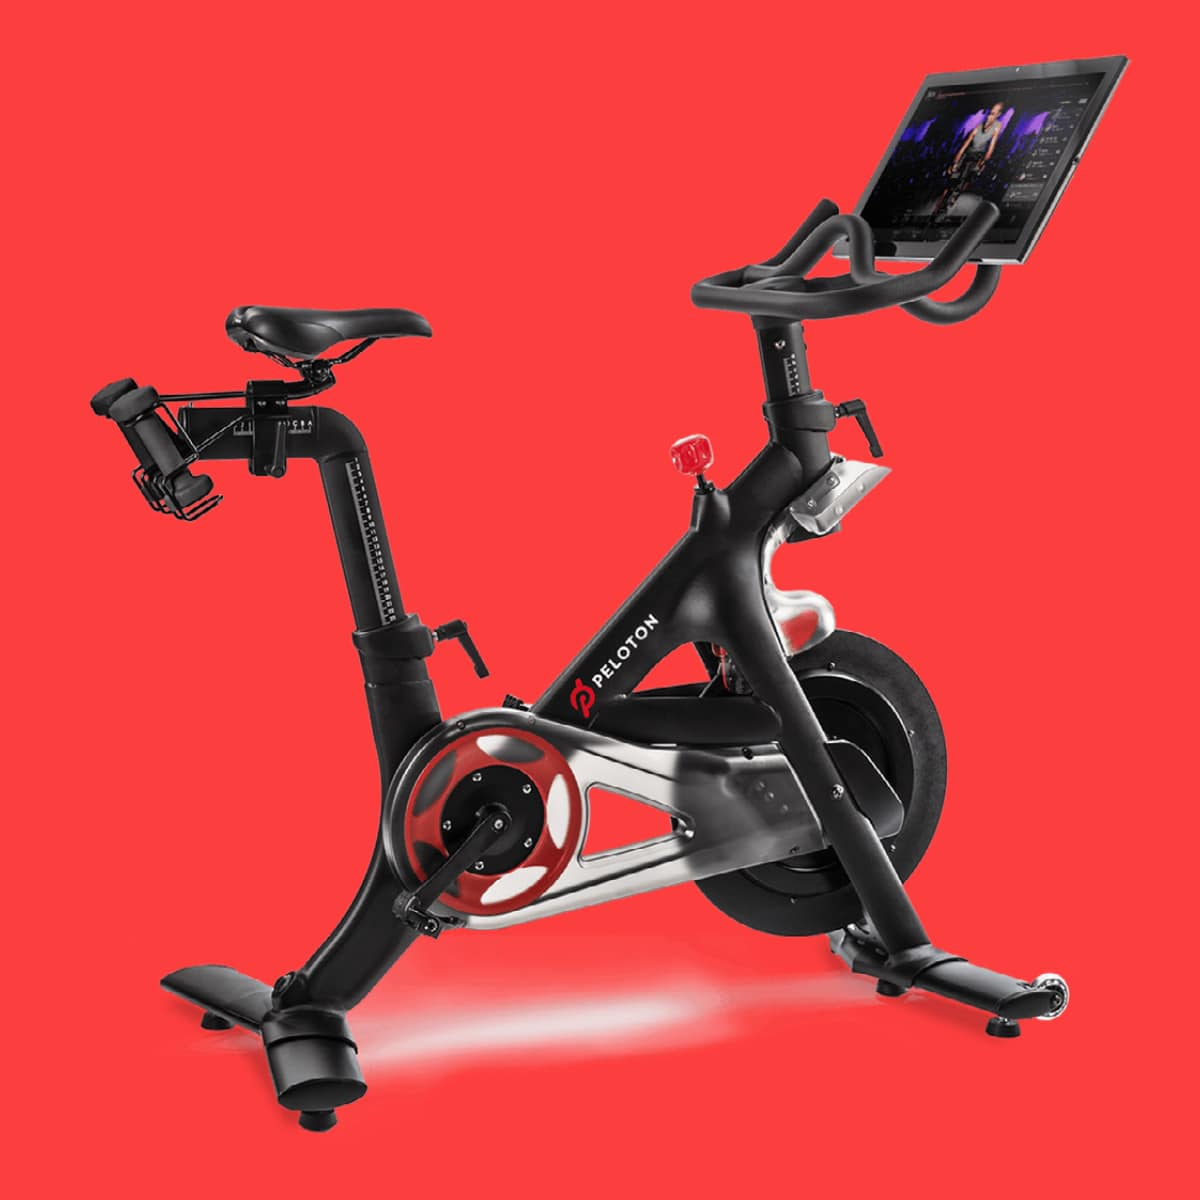 peloton experience may be the best workout from home